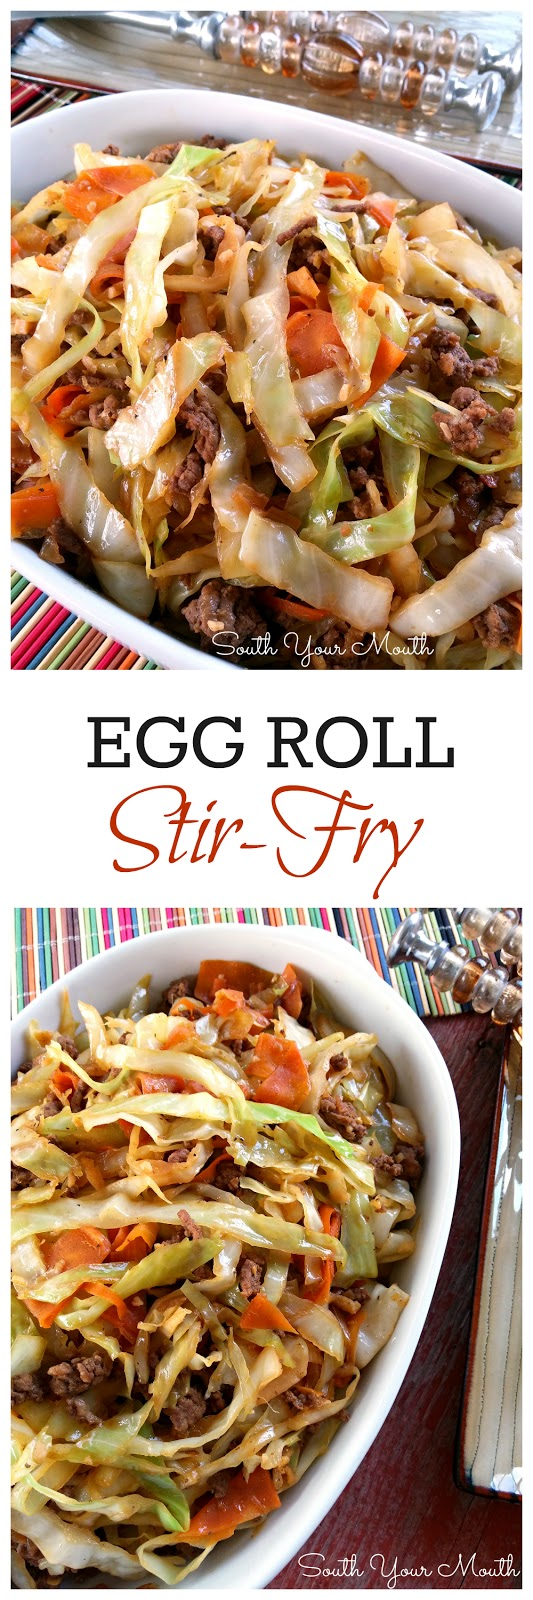 Egg Roll Stir-Fry: all the flavor of an egg roll without the wrapper! Like an unstuffed egg roll in a bowl. So delicious! #eggroll #stirfry